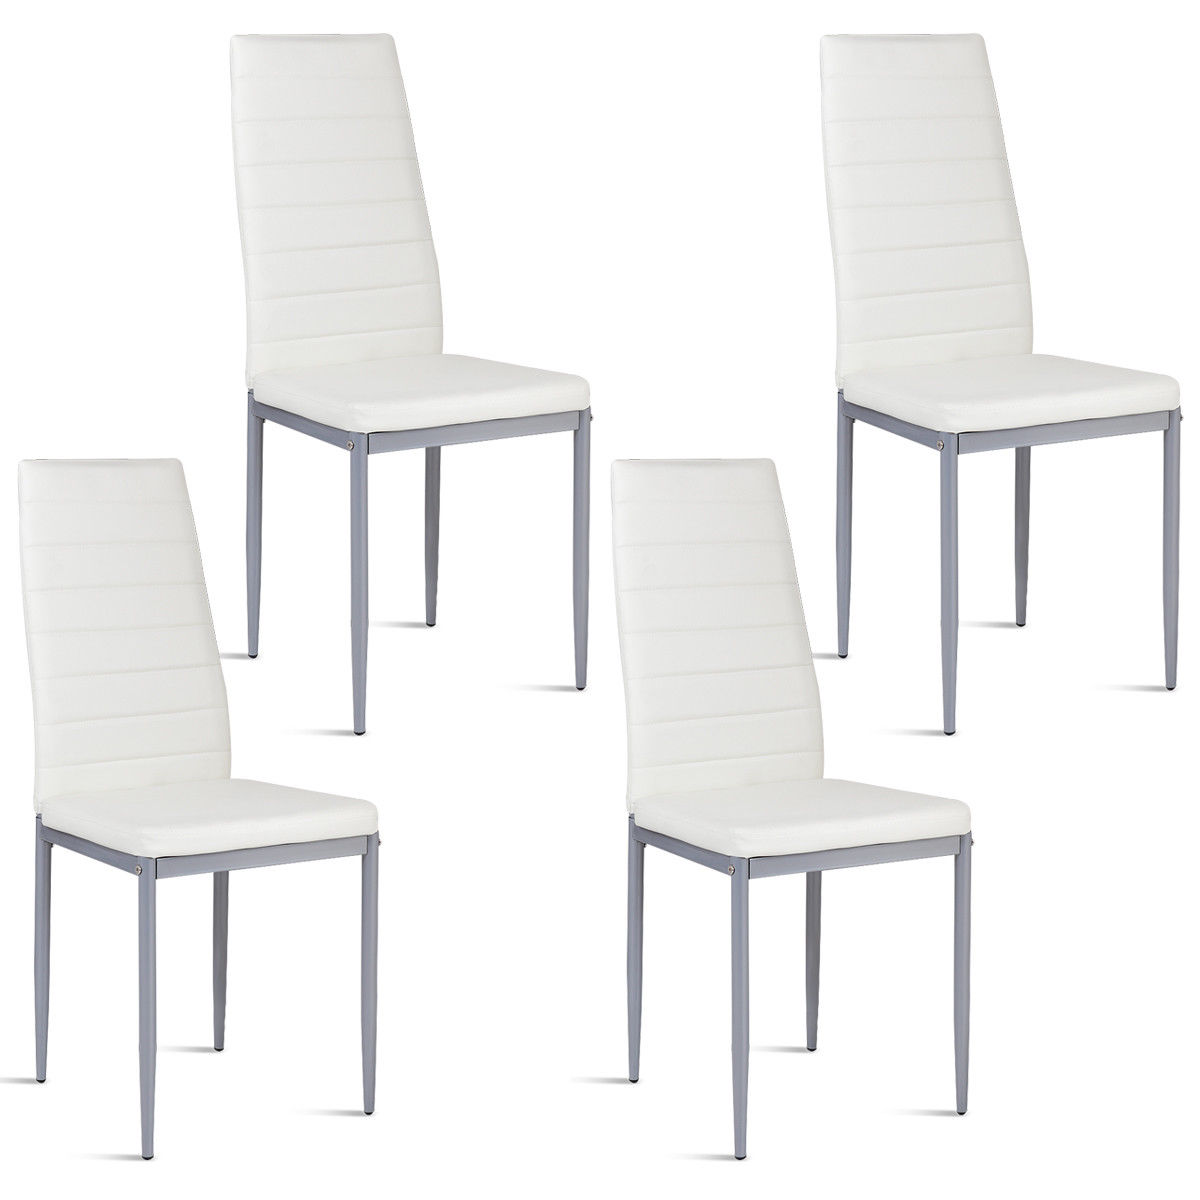 Merveilleux White Leather Dining Chairs